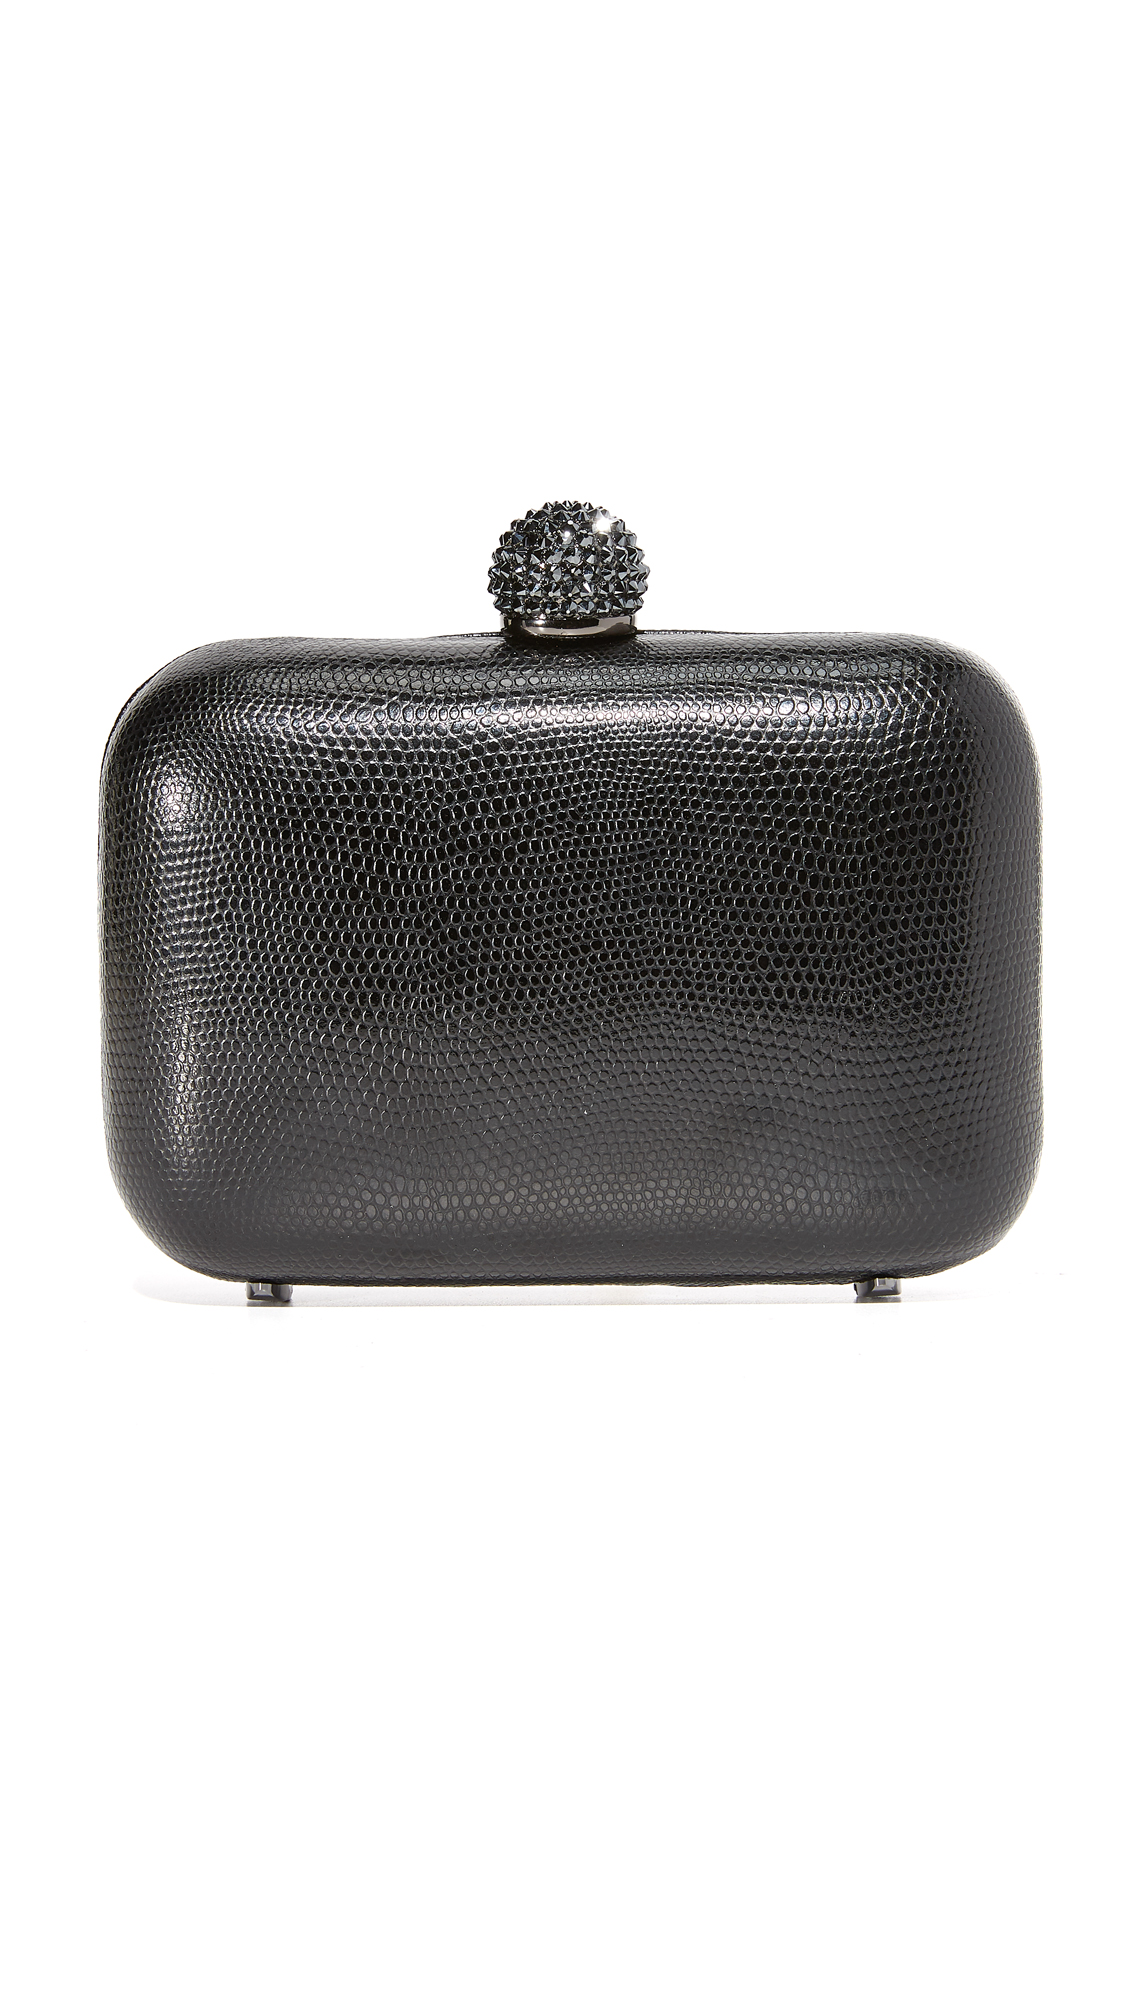 Inge Christopher Fiona Leather Clutch - Black